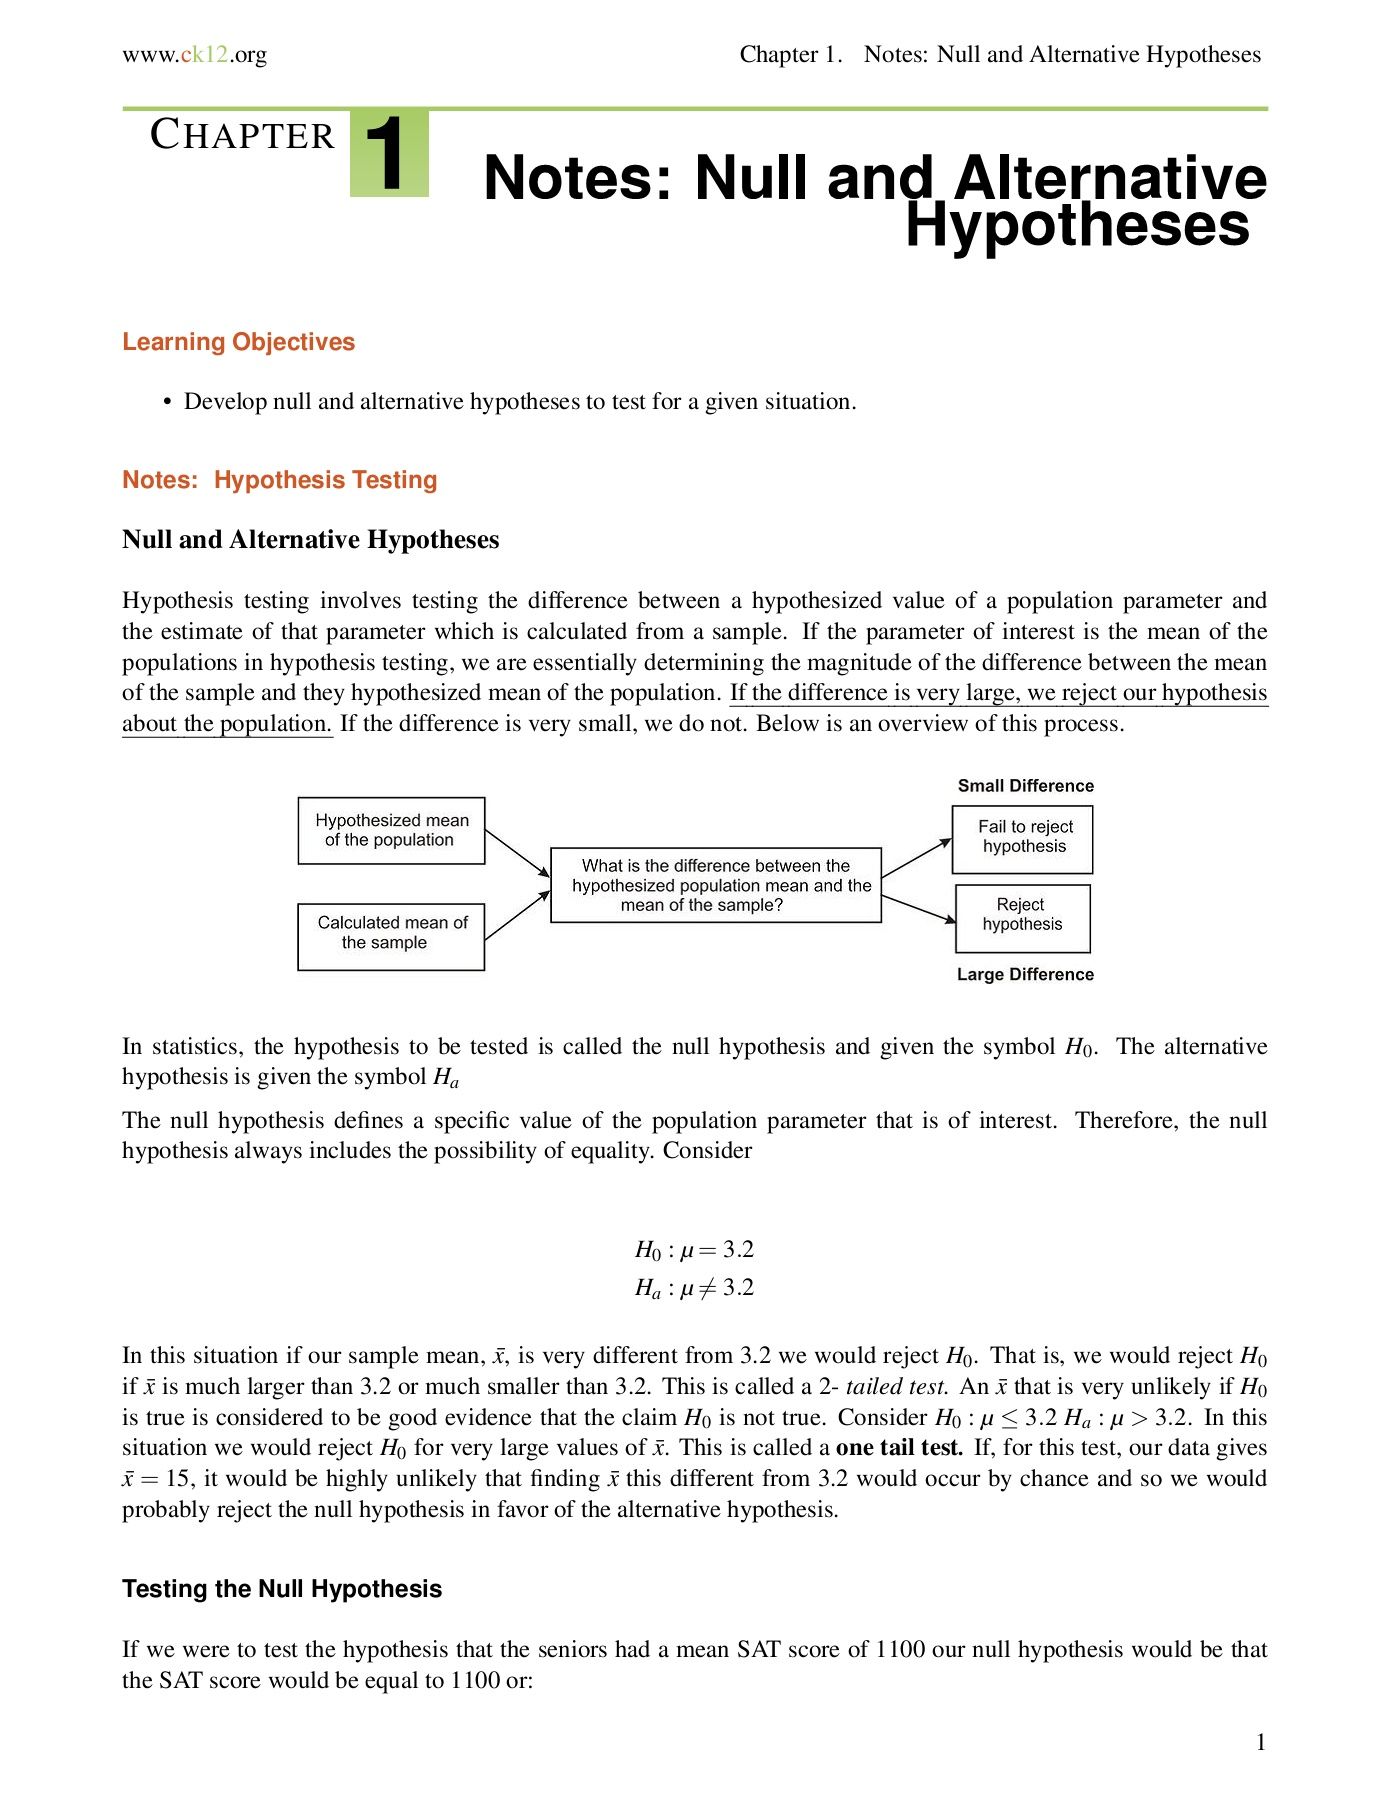 Notes Null And Alternative Hypotheses